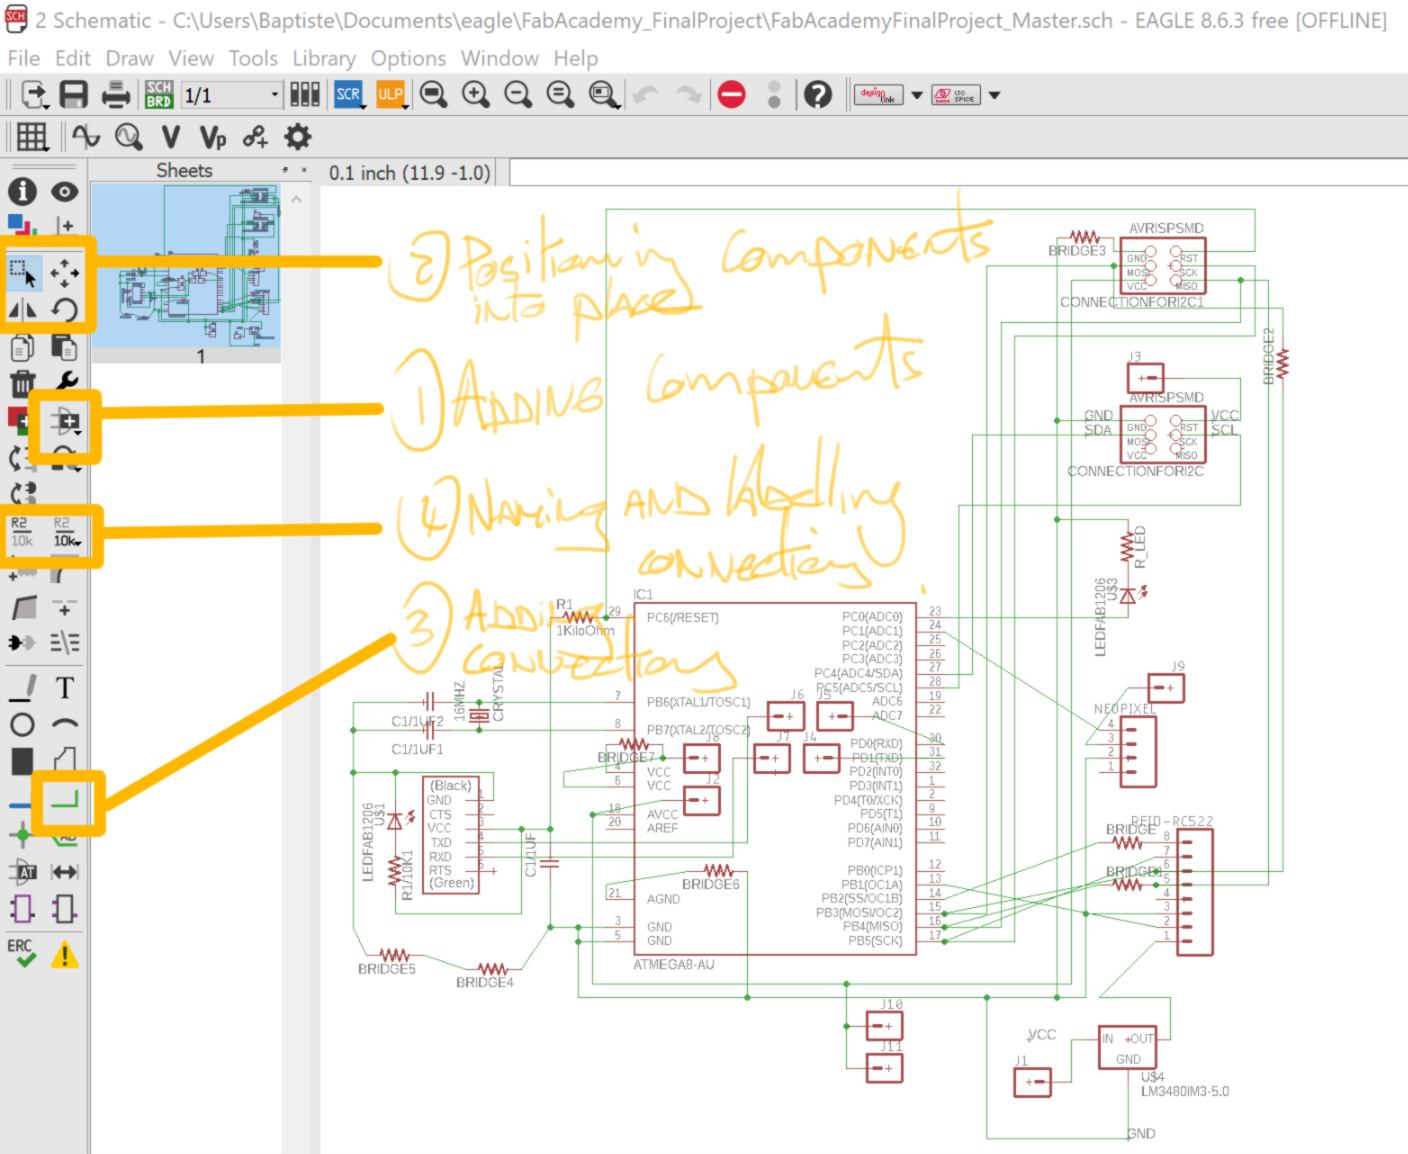 Daily Updates Falstadbestonlinecircuitsimulator In The Board Layout I Often Change Type Of Tracing Used By Right Clicking 90 Degrees Angled Traces Tend To Be Cut Neatly Therefore Only Switch